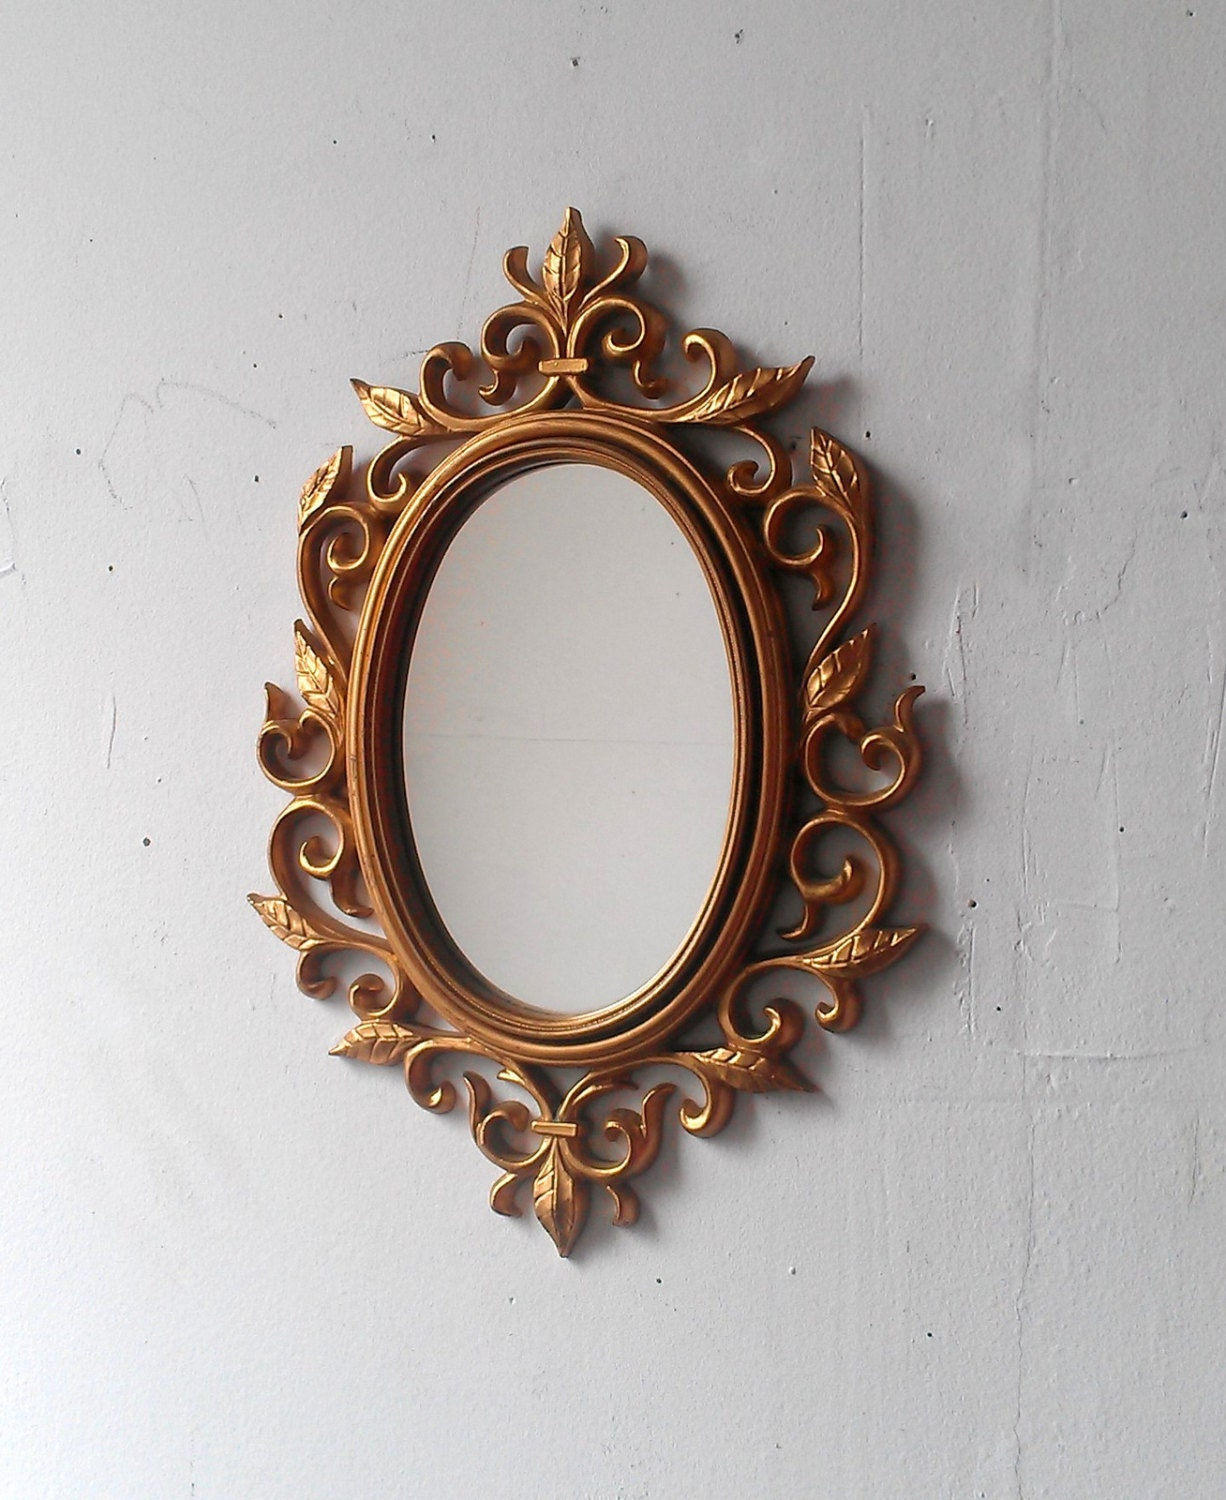 Gold wall mirror in decorative vintage oval frame for Fancy oval mirror